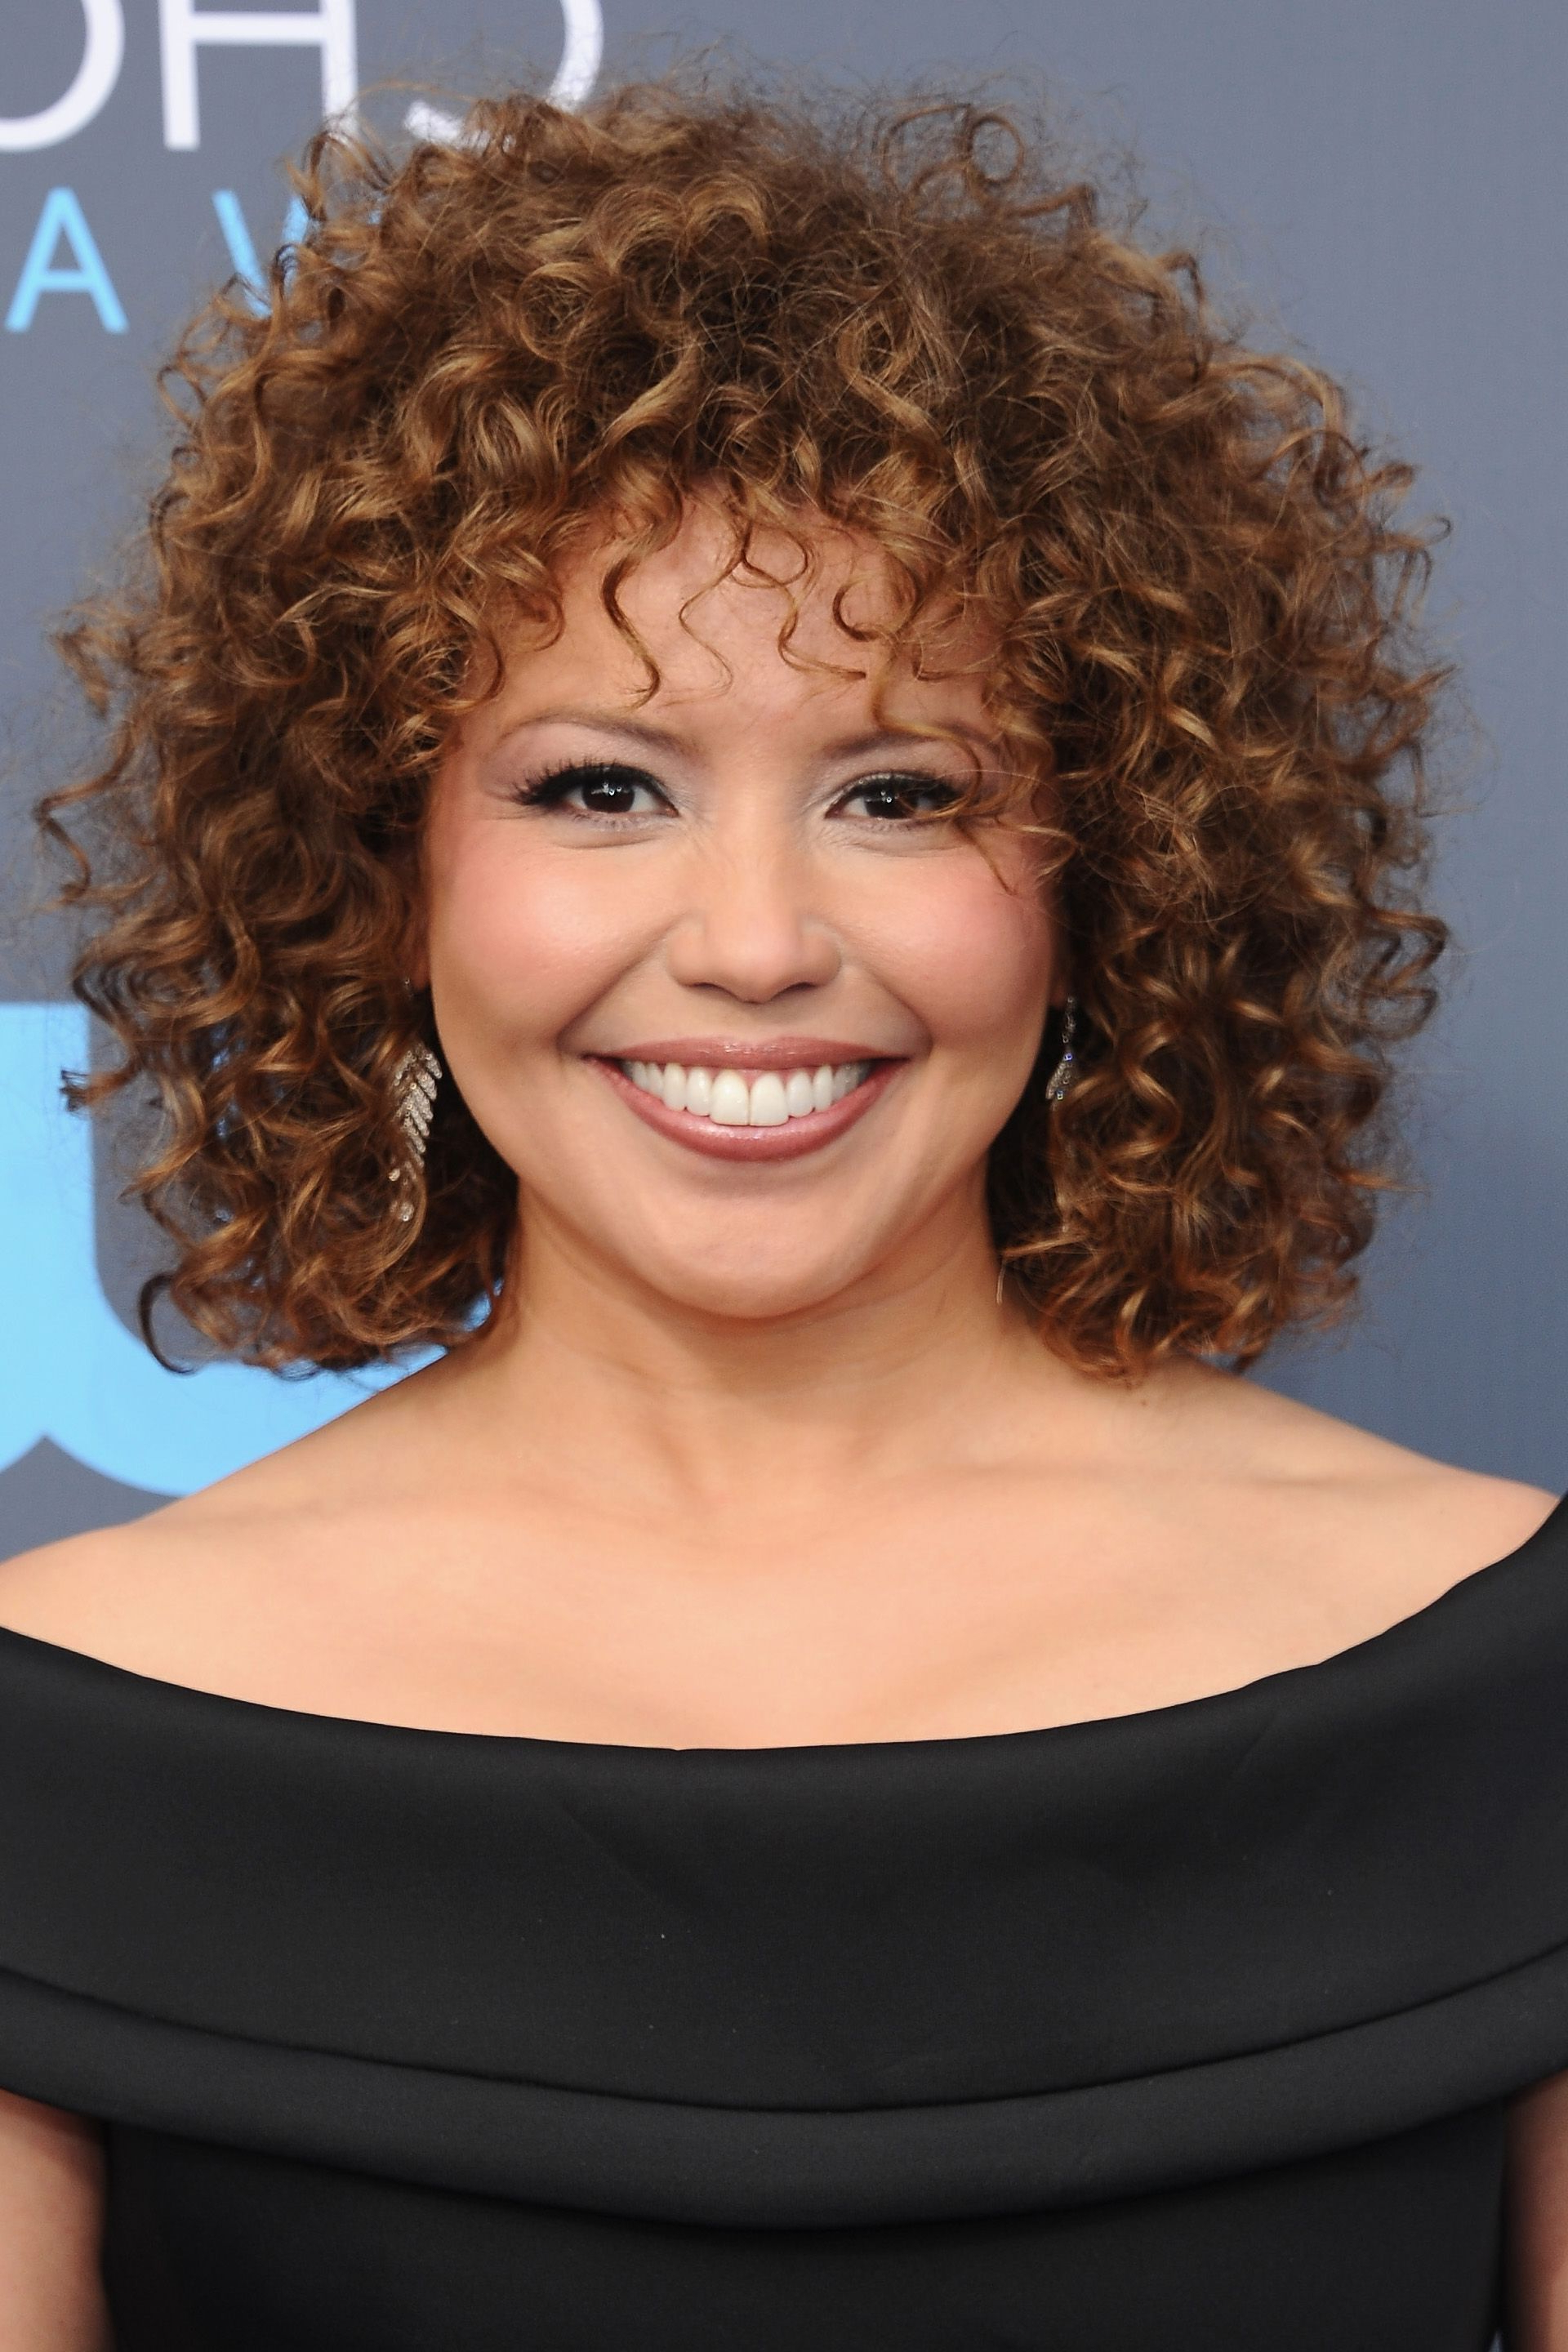 20 Best Short Curly Hairstyles 2019 – Cute Short Haircuts With Regard To Pixie Haircuts With Tight Curls (View 8 of 20)